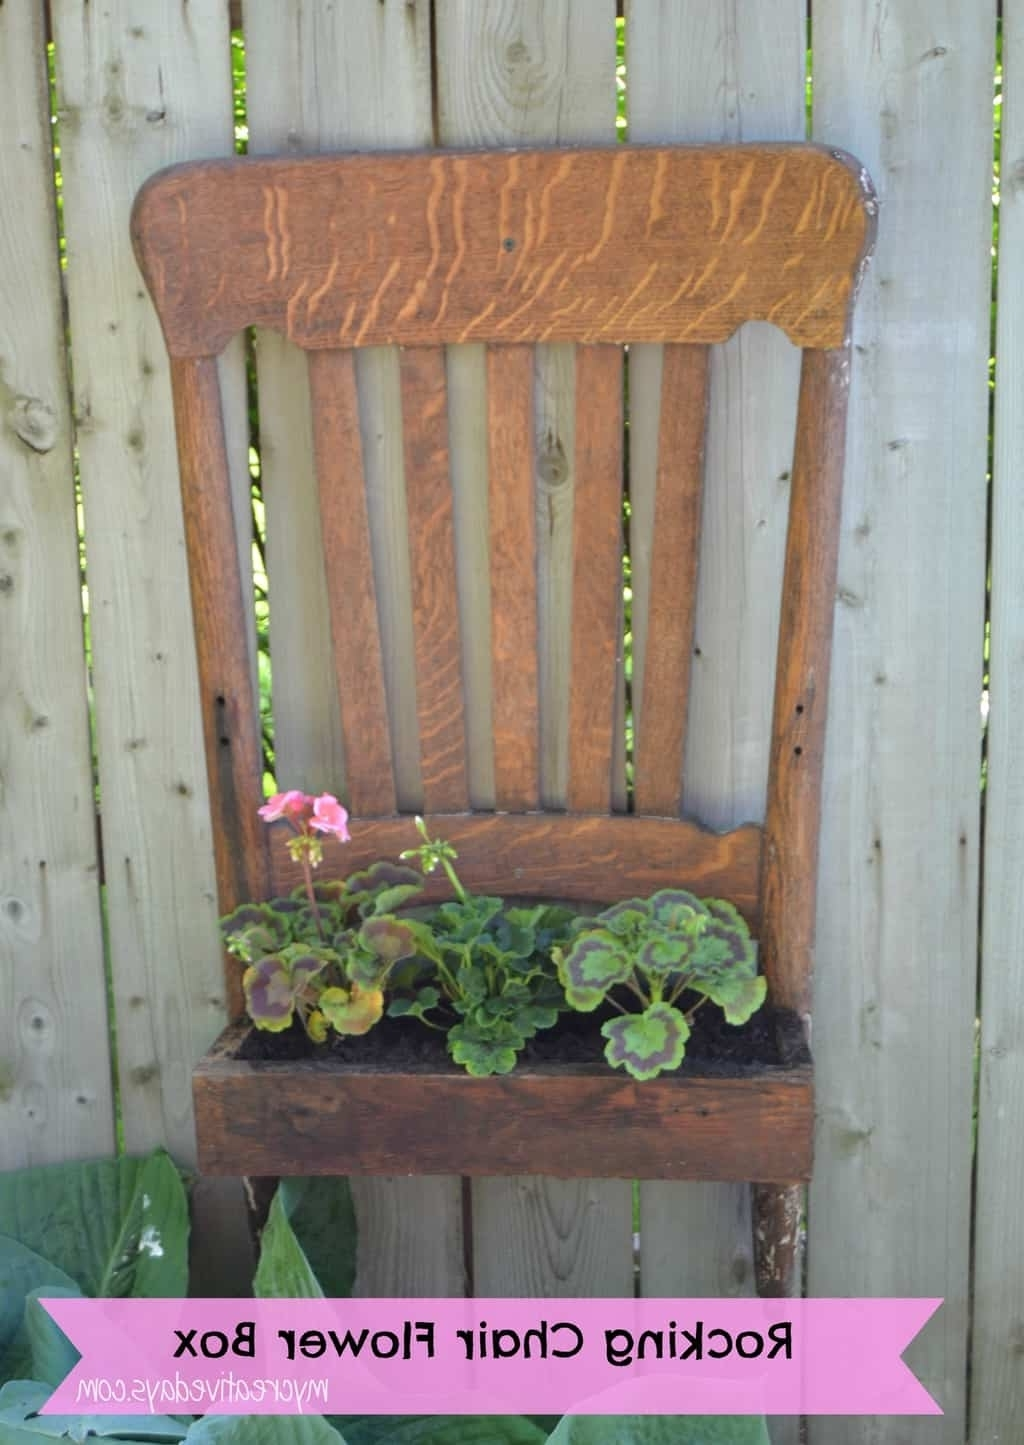 Diy Rocking Chair Upcycle Tutorial – My Creative Days In Most Recent Upcycled Rocking Chairs (View 3 of 15)